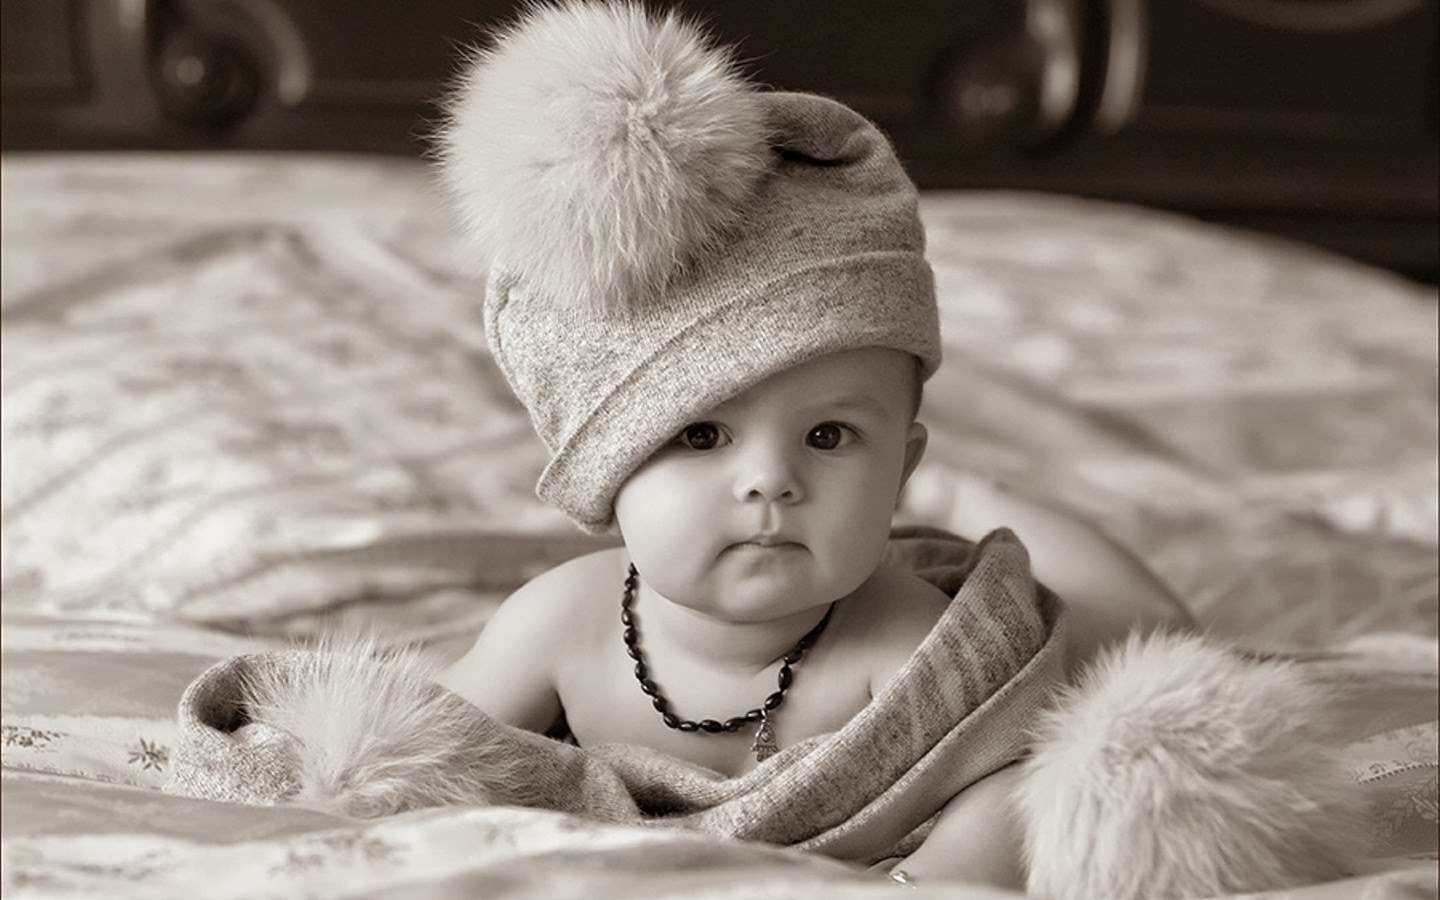 nice cute baby image in black and white